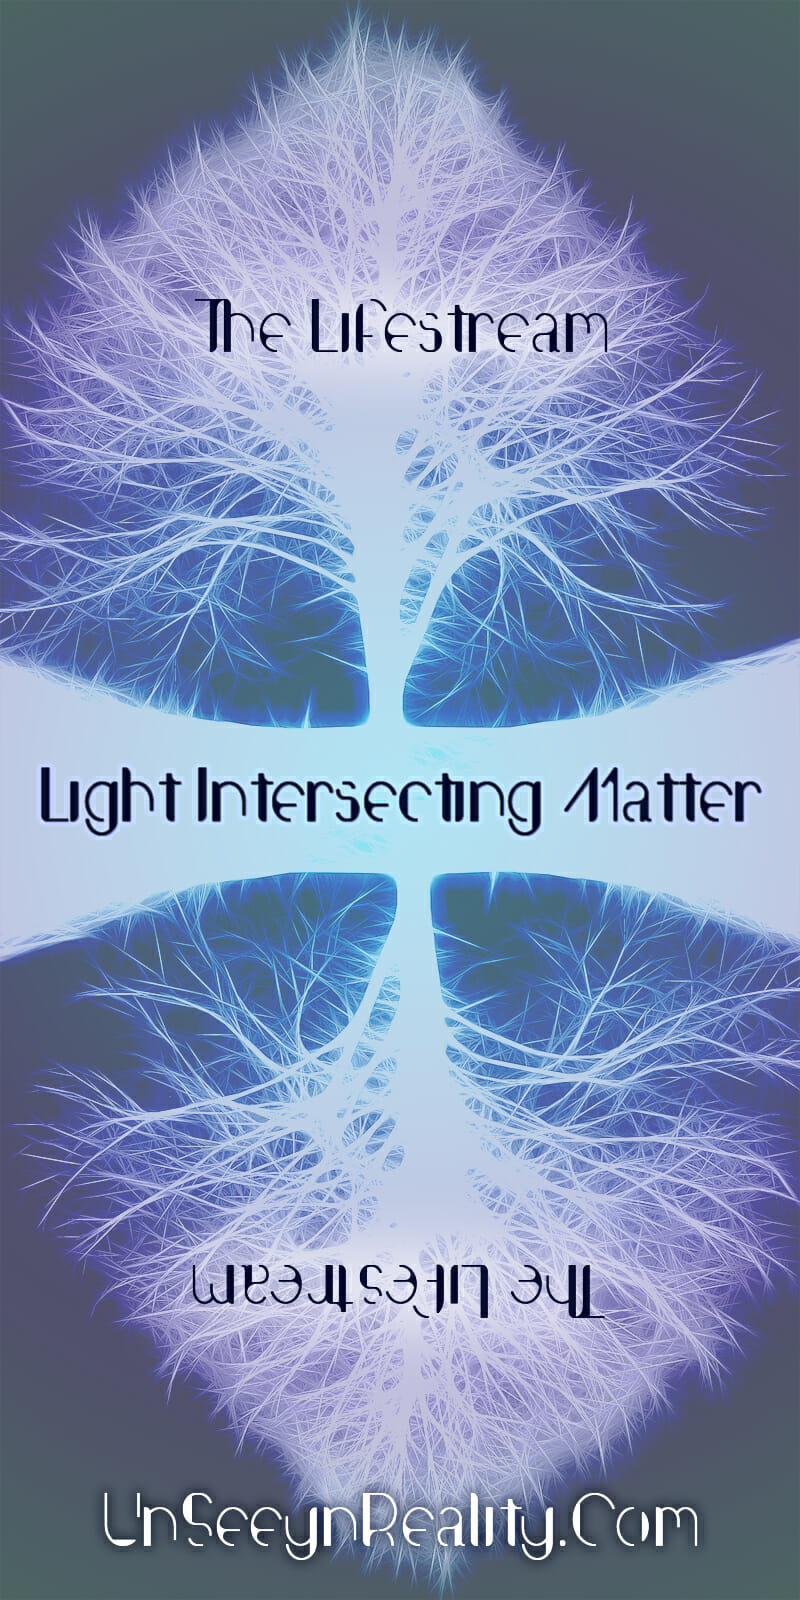 Light into Matter